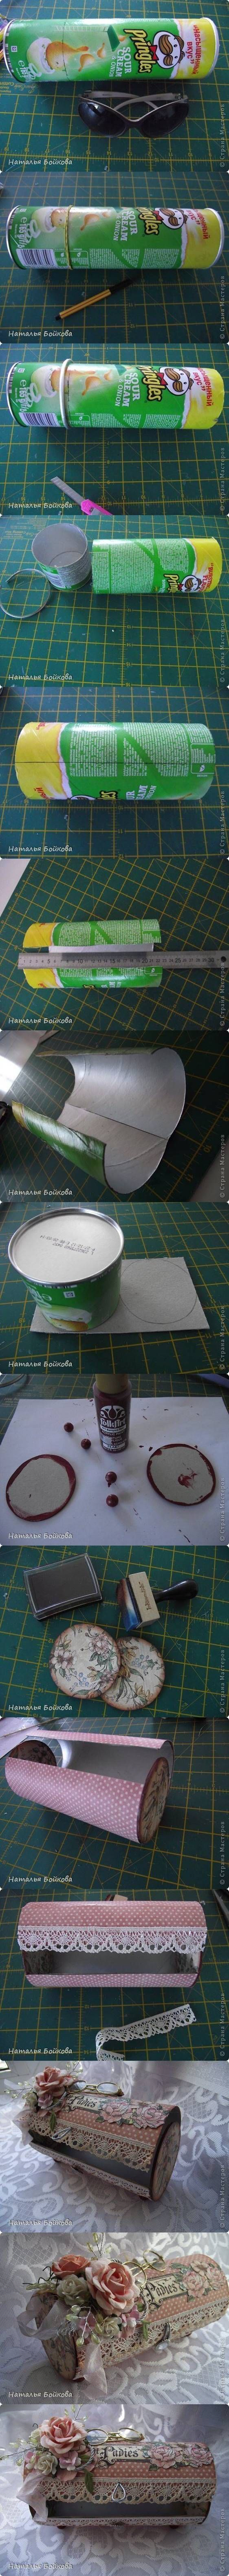 DIY Pretty Vintage Box from Pringles Can #craft #recycle:  UNA CAJITA VINTAGE